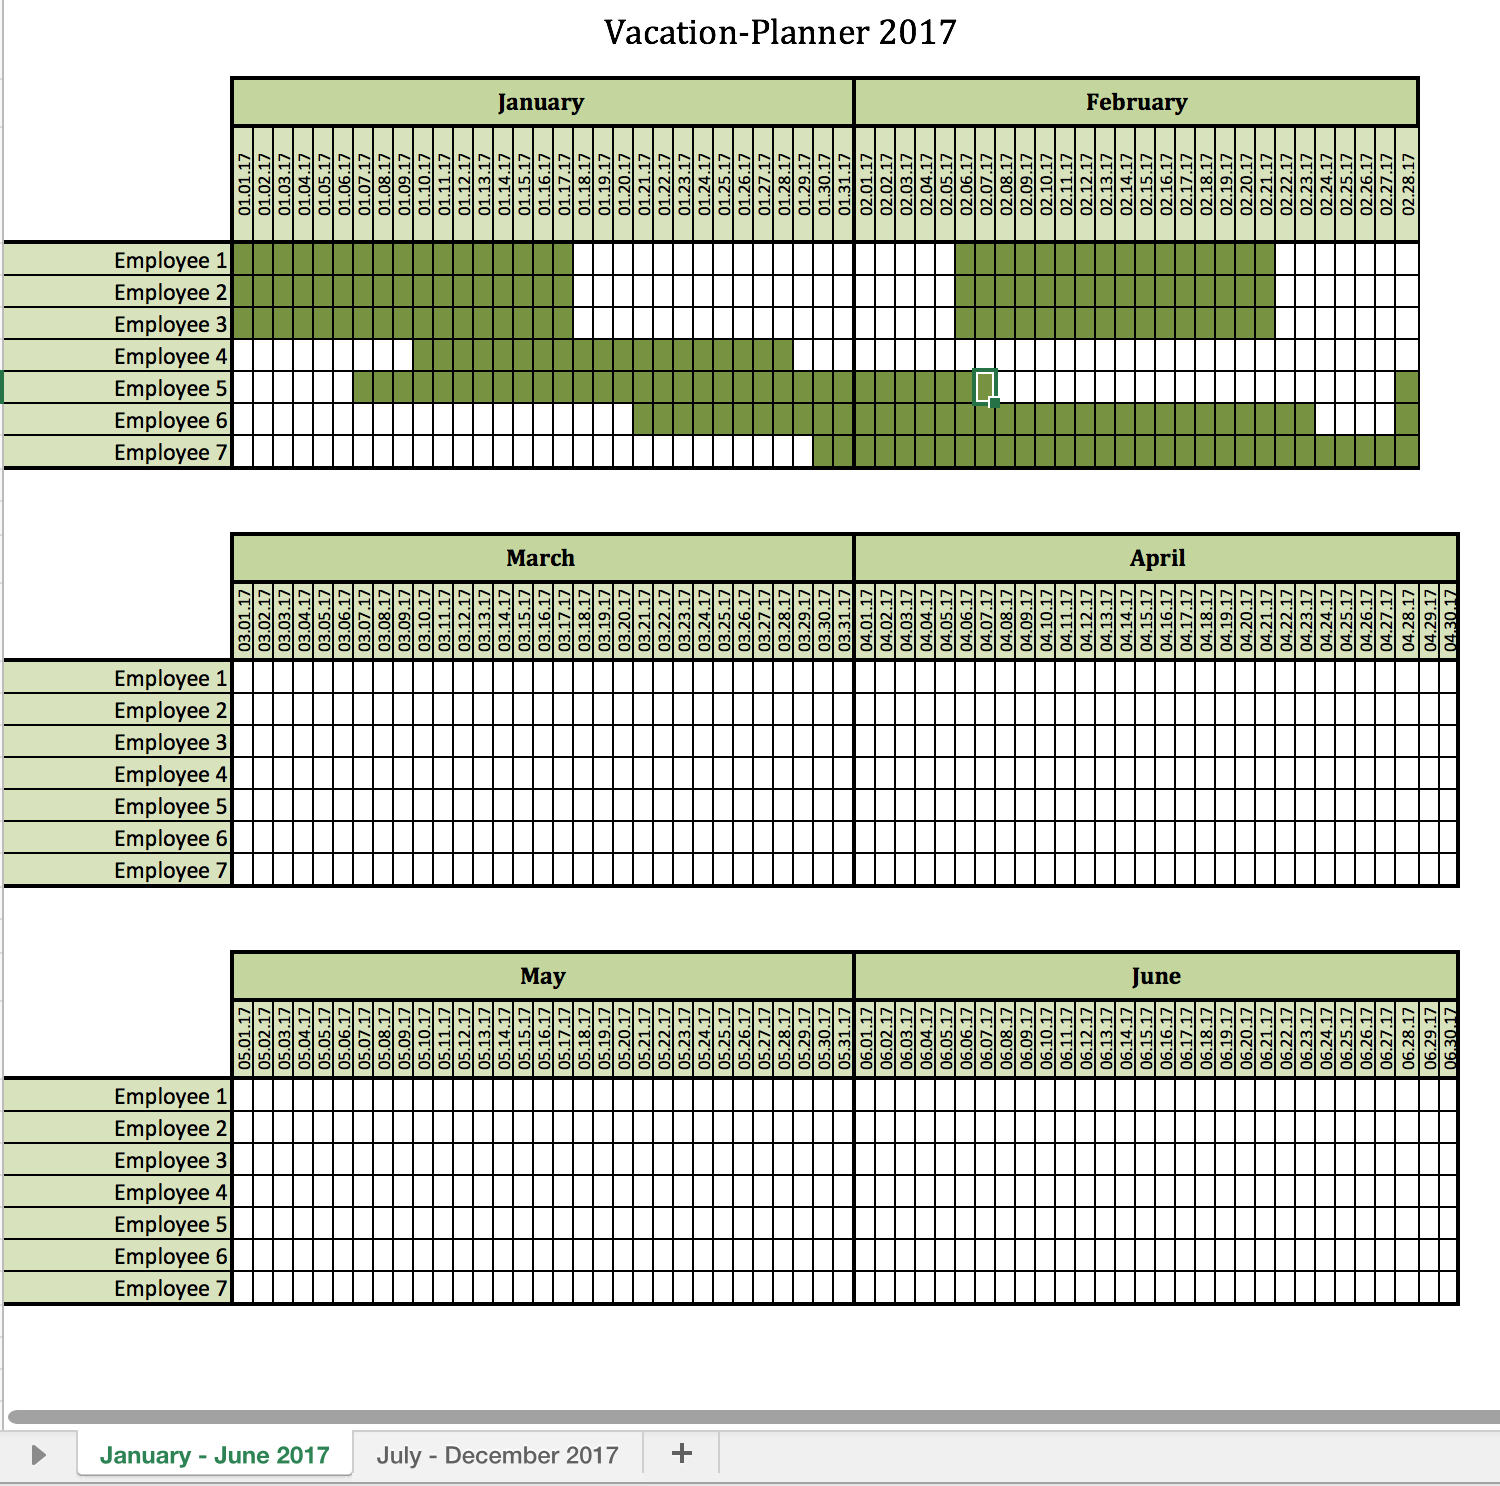 Vacation Schedule Spreadsheet In Vacationplanner 2017  Excel Templates For Every Purpose